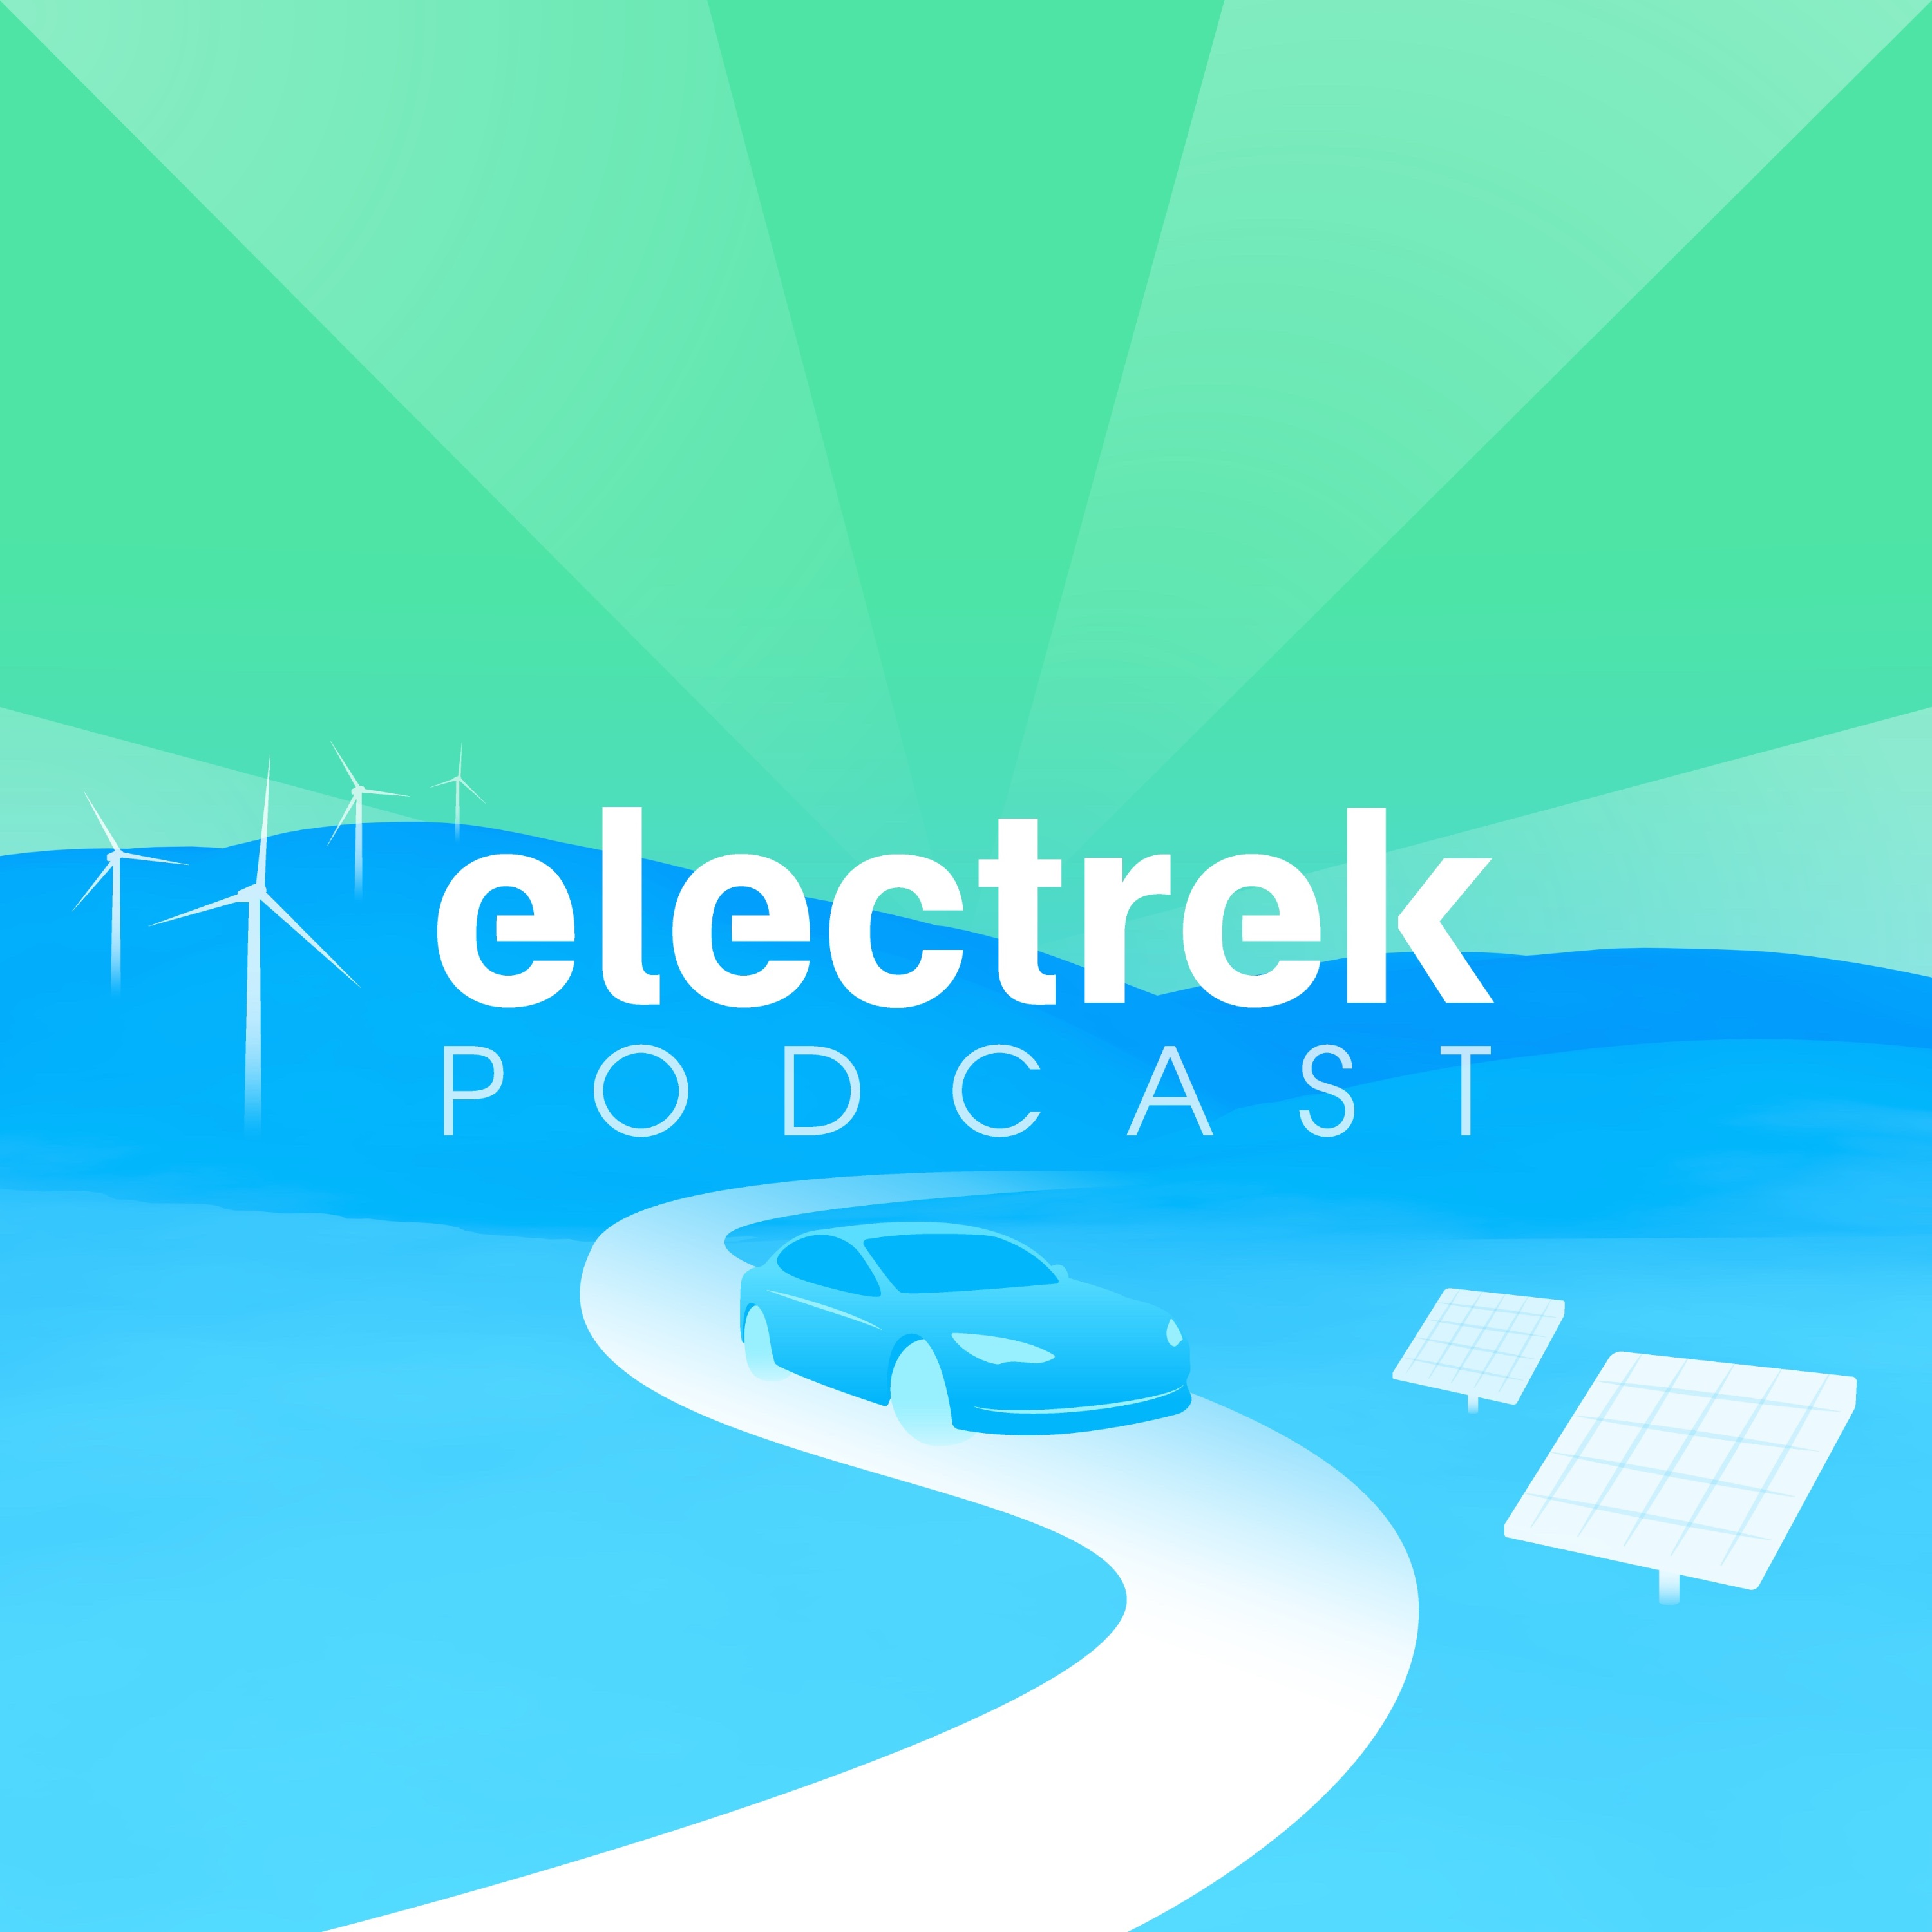 Electrek By Frederic Lambert Seth Weintraub On Apple Podcasts Garmin Nuvi 2445 Gps Repair Electronics And Technology News